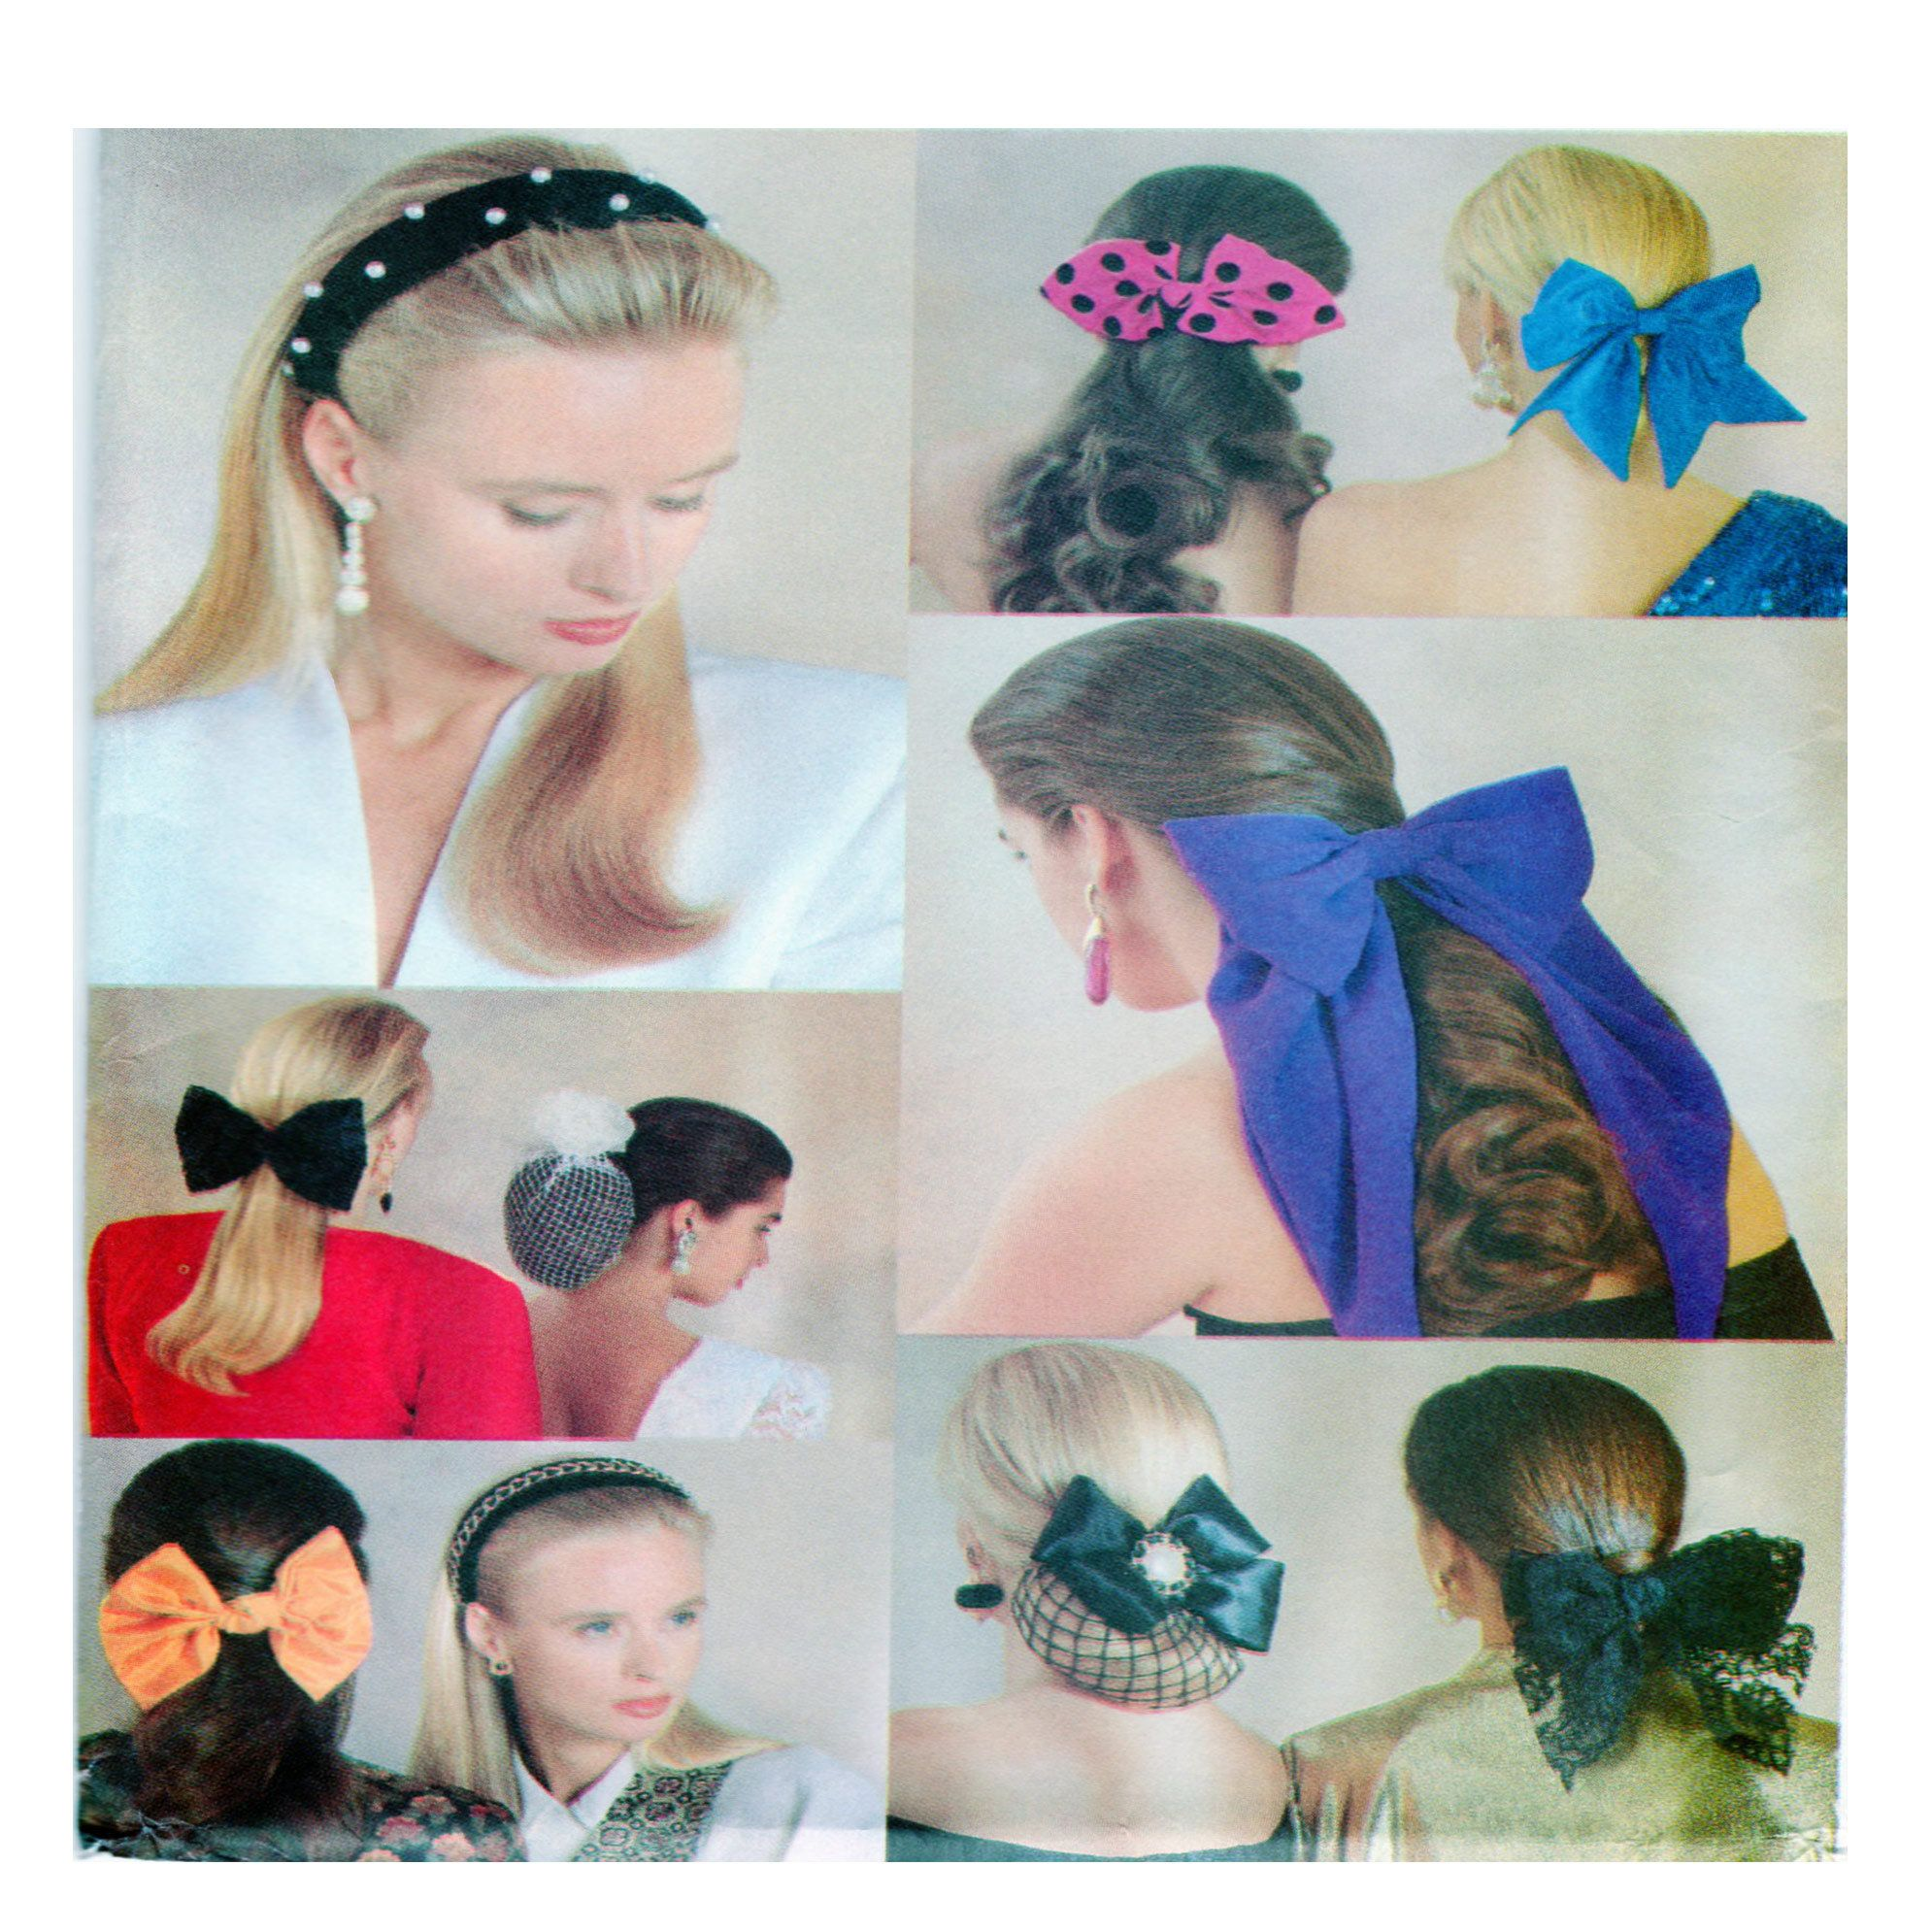 Butterick 5135, Women Fashion Accessories, Sewing Pattern, Hair Band, Hair Bow, Wedding Accessories, Snood, Hair Bun Wraps, Hair Ties, UNCUT